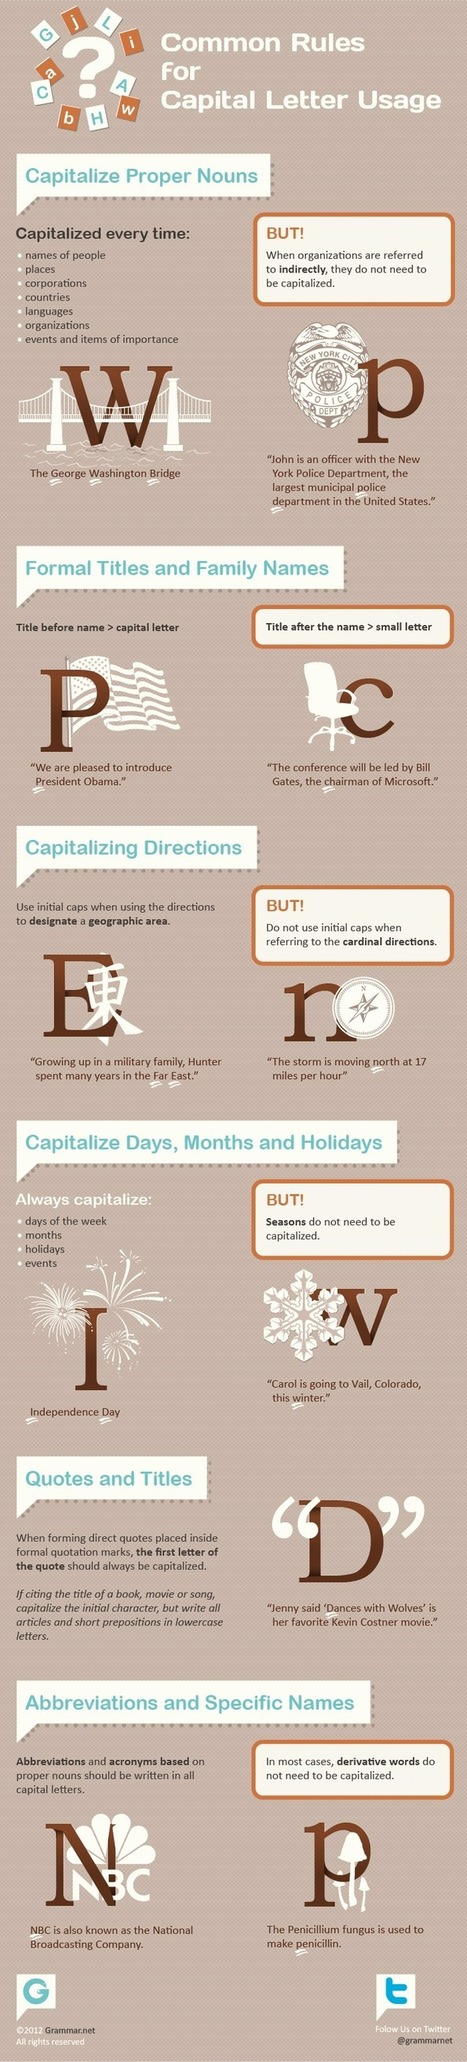 Common Rules for Capital Letter Usage   EFL poster   Teaching EFL and more specifically business English to university students.   Scoop.it